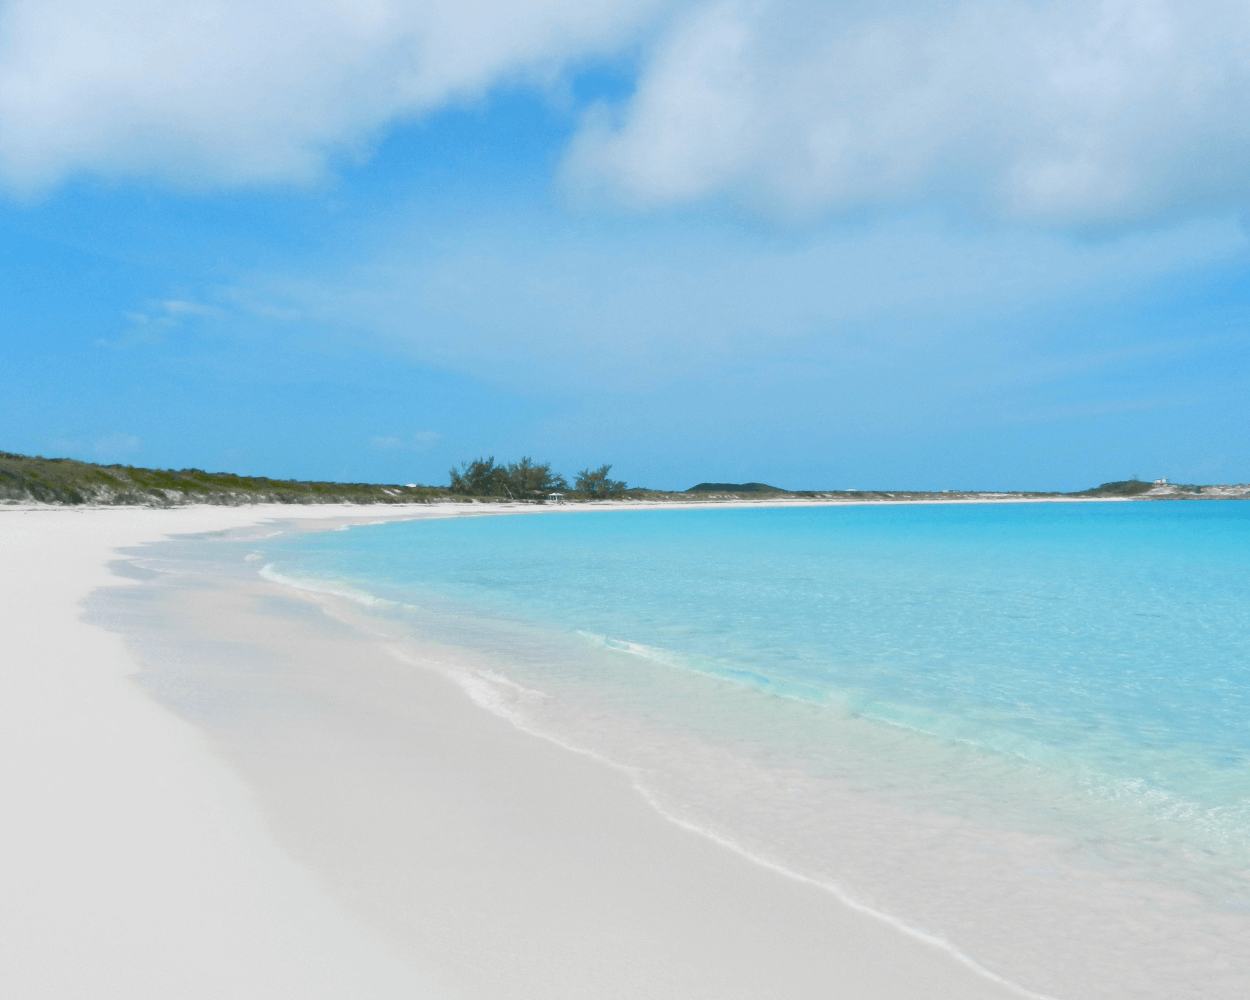 looking down the shore with on a white sand beach on Exuma in the Bahamas